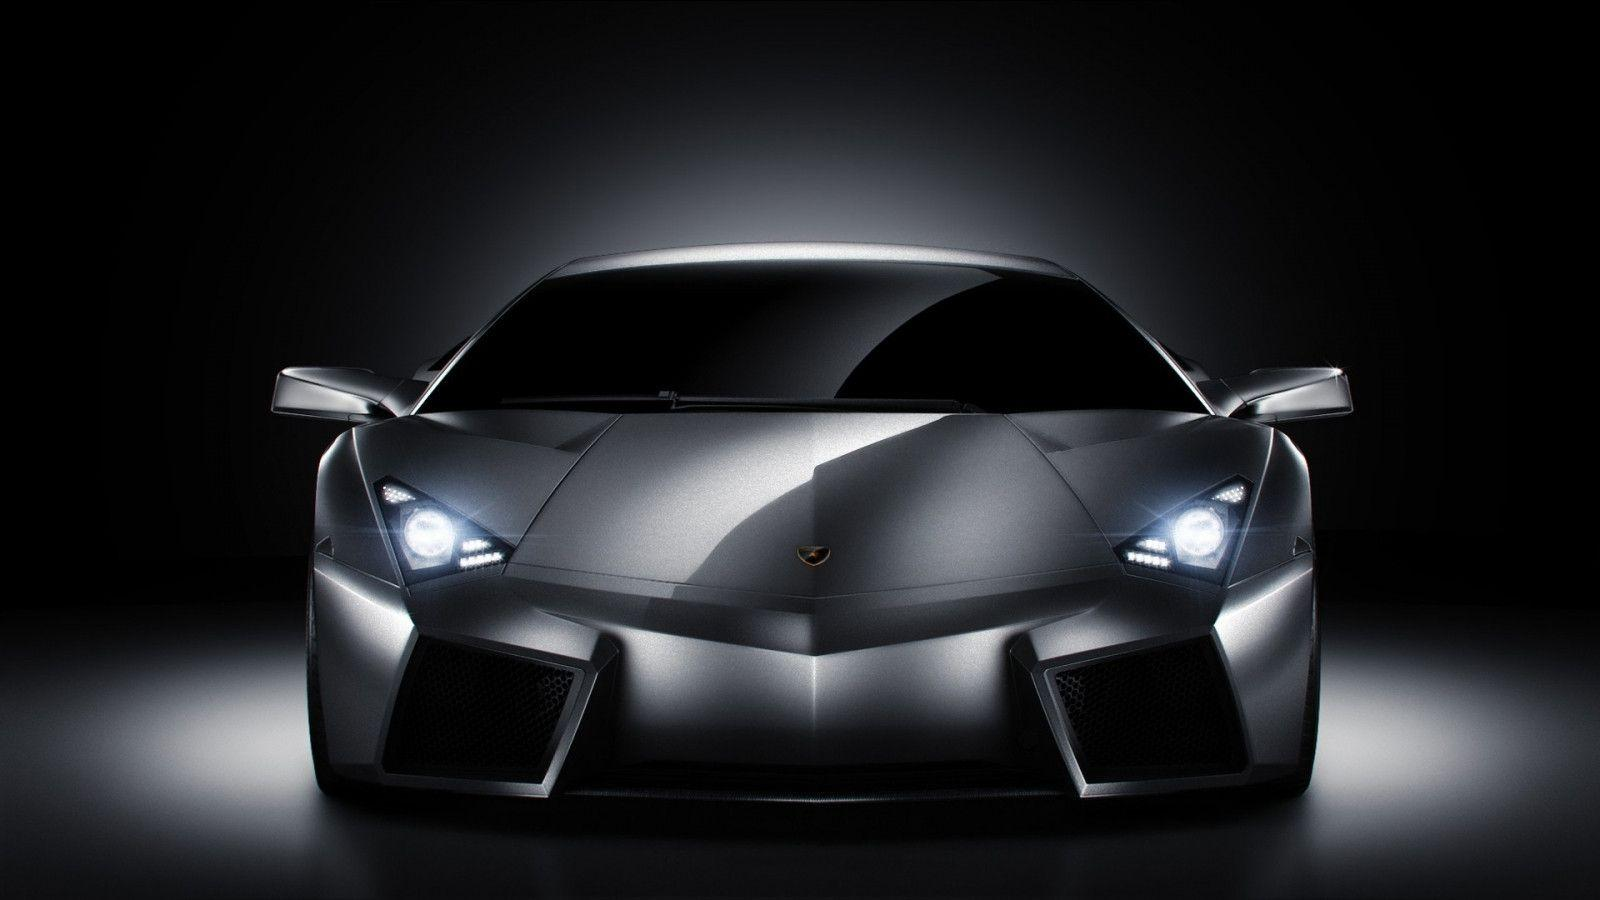 images for lamborghini hd wallpapers 1080p on road - Lamborghini Huracan Hd Wallpapers 1080p